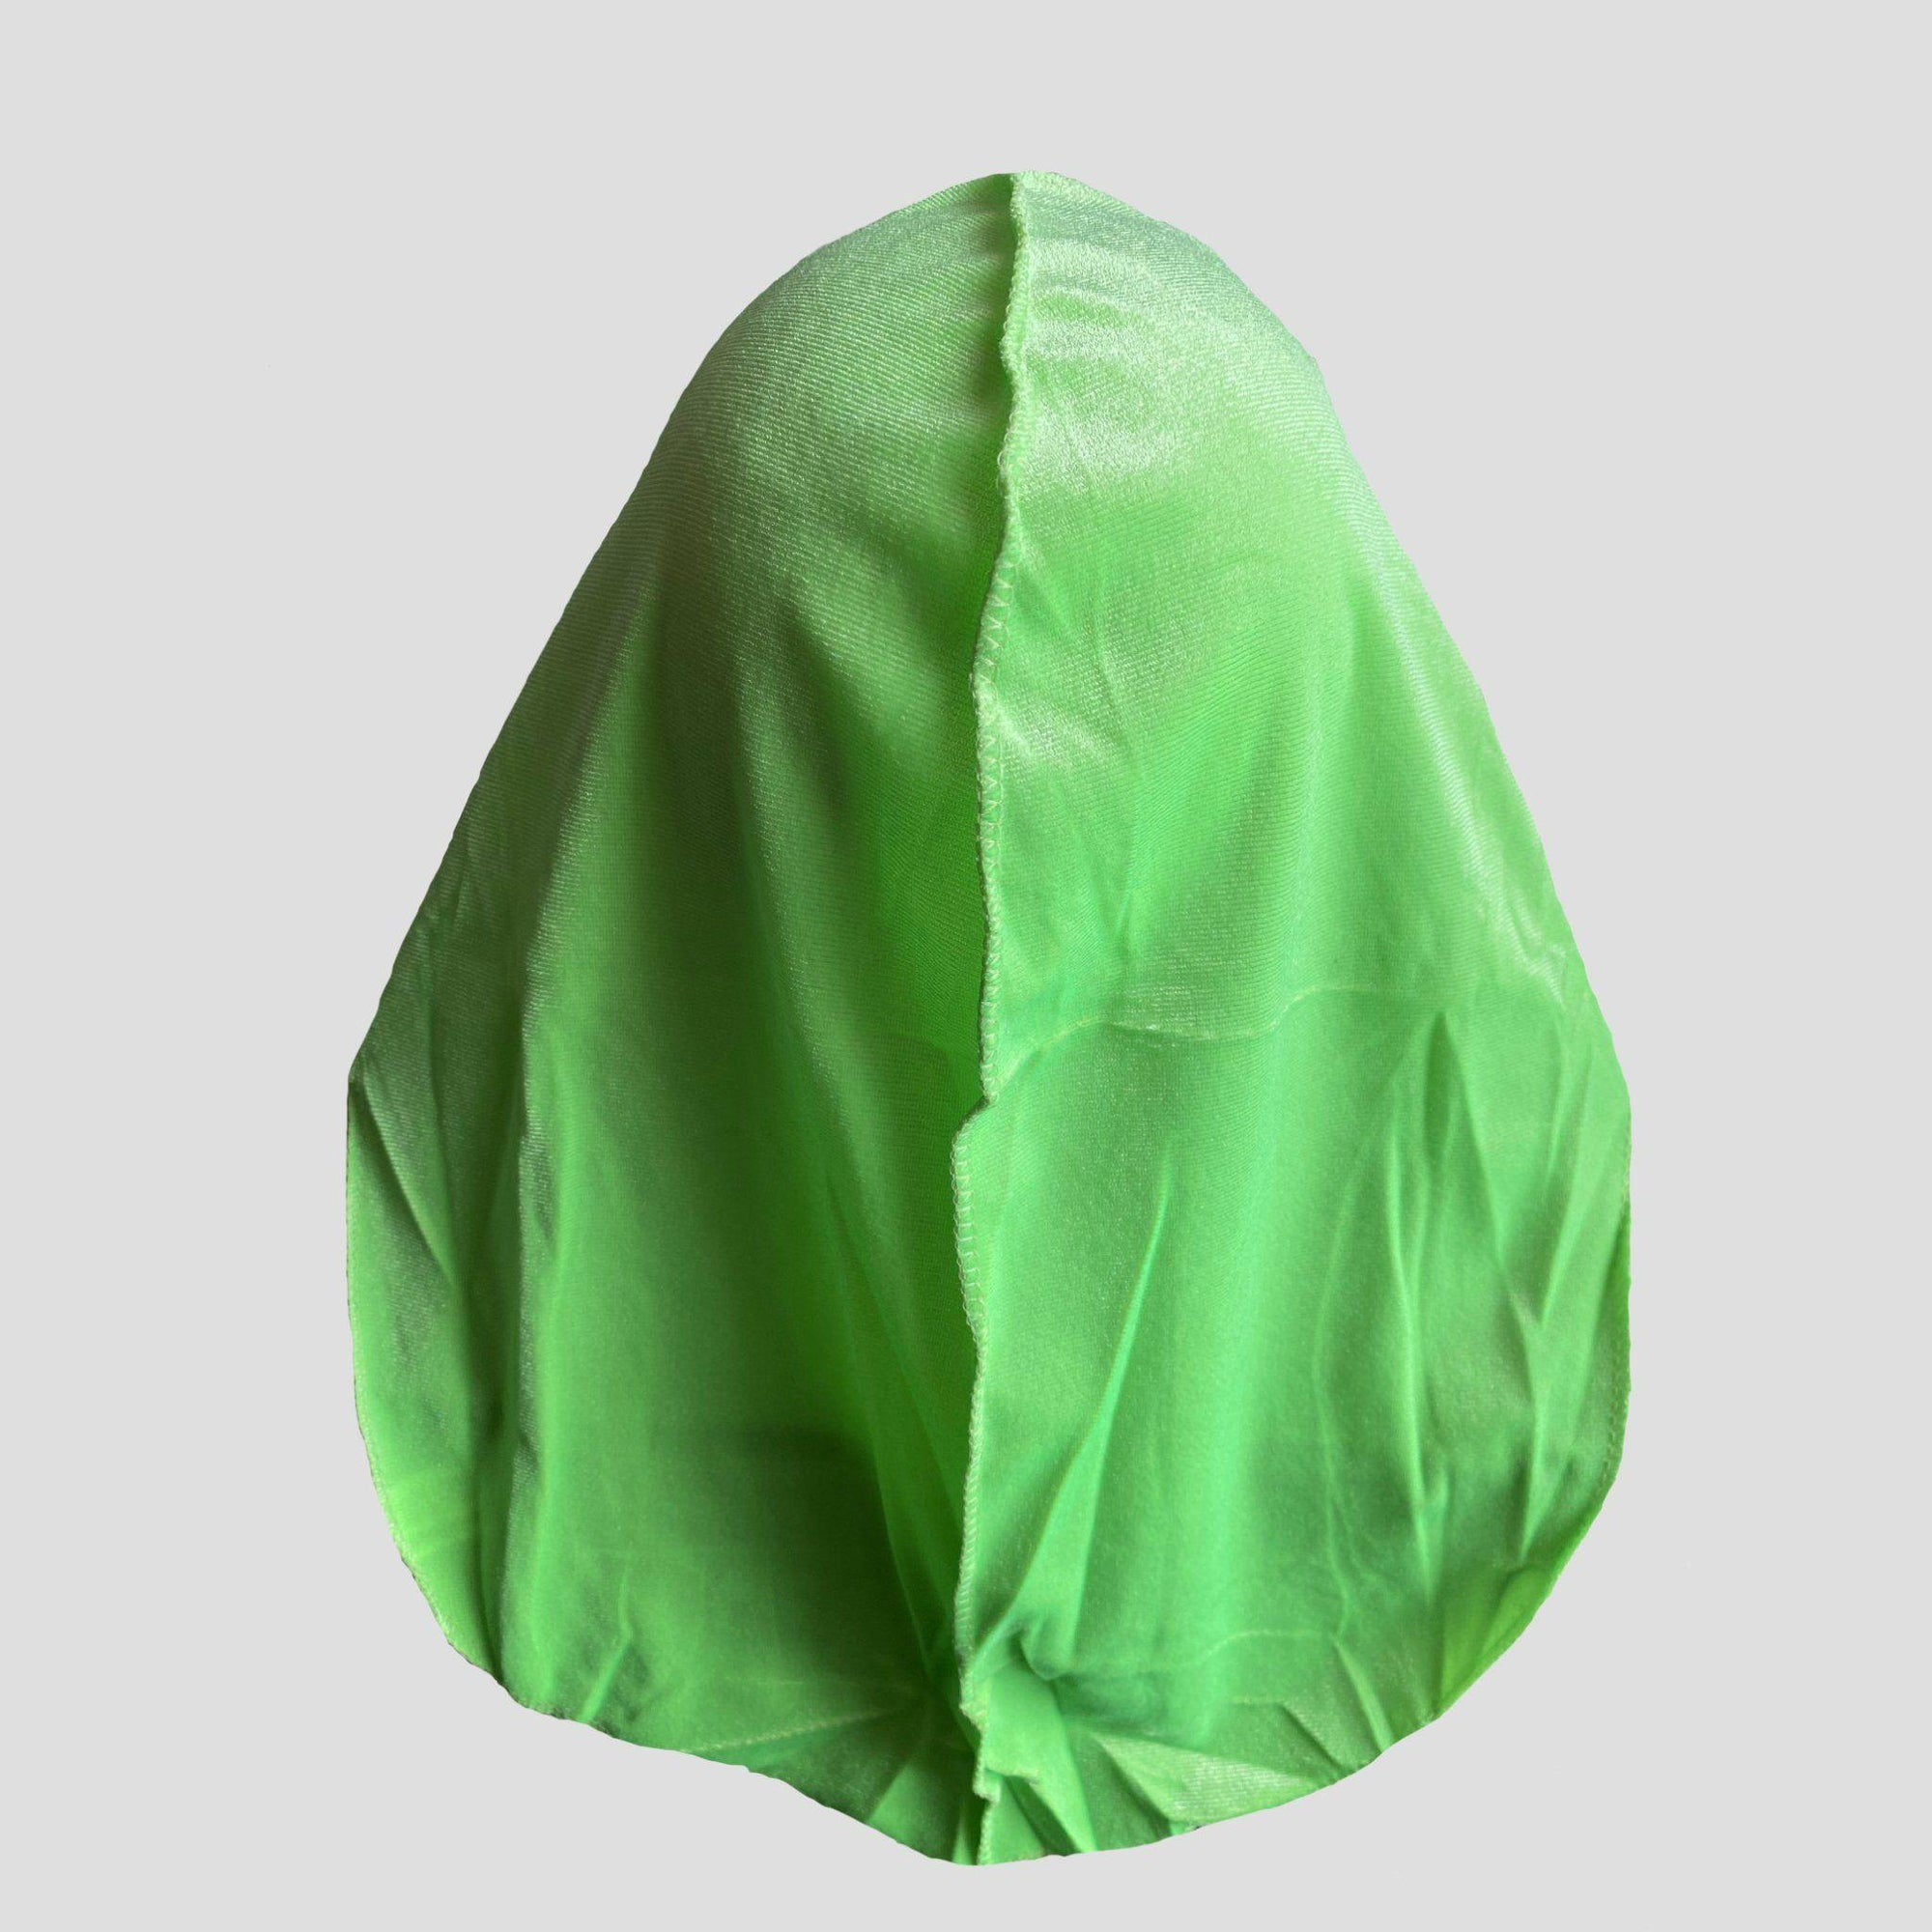 Premium Limited Edition Neon Green Velvet Durag - Durag Wave